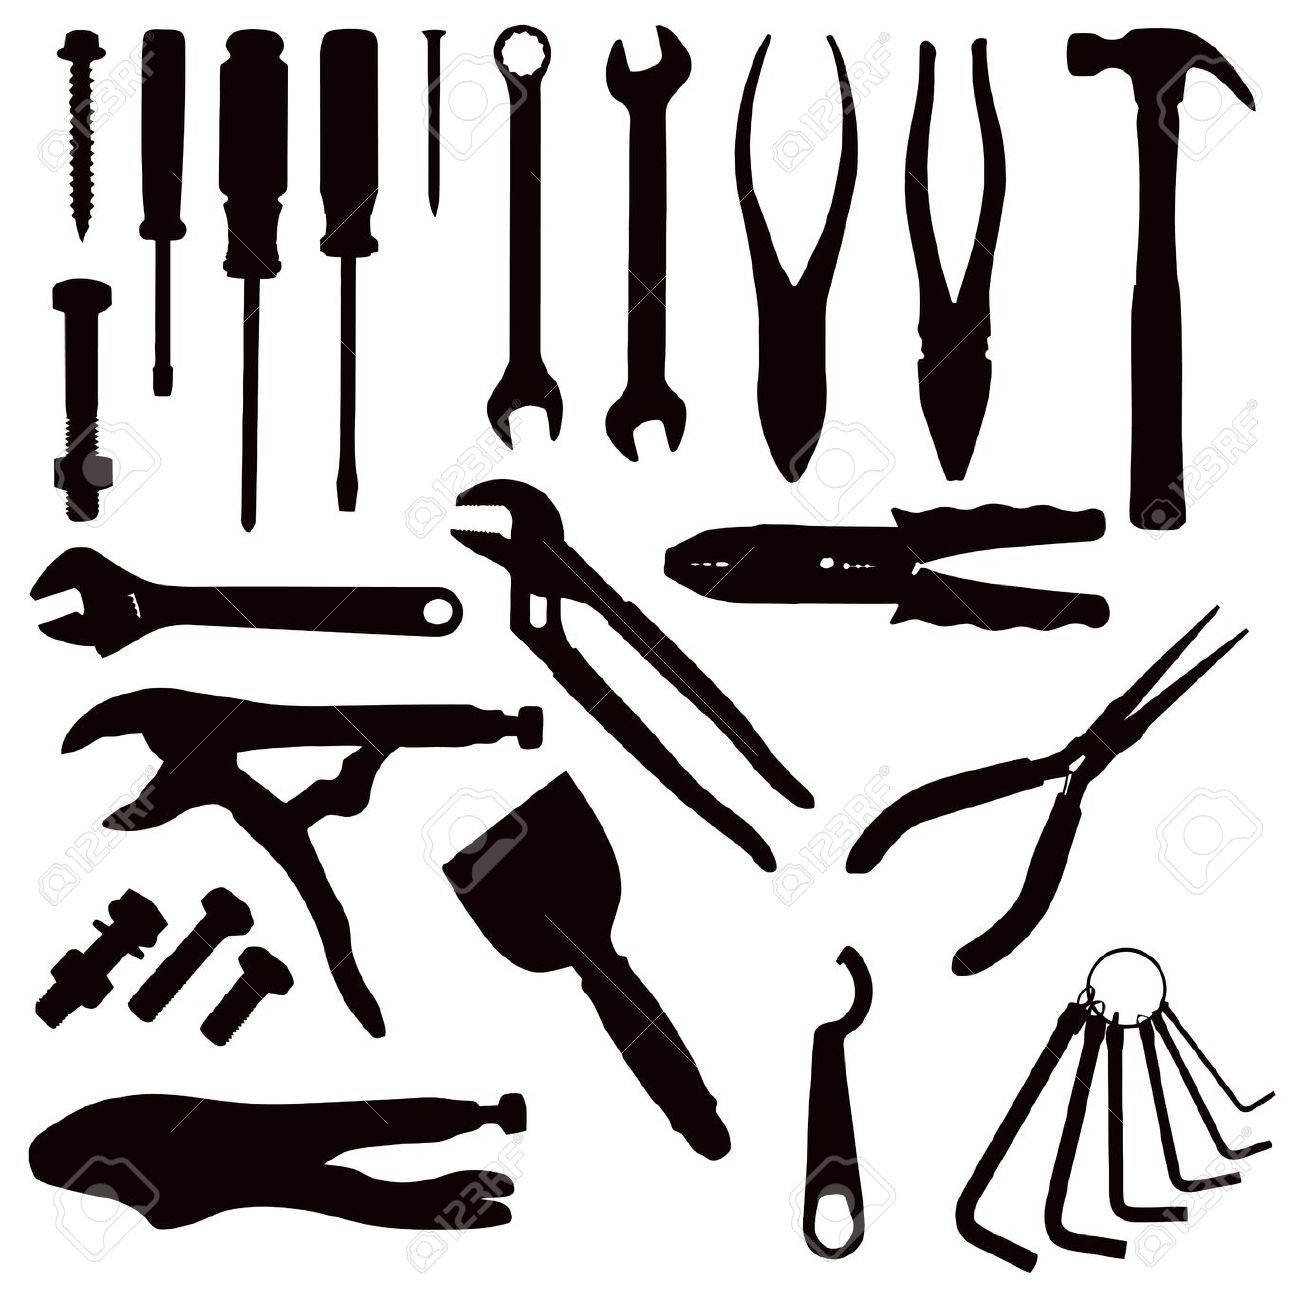 Screws clipart hand tool Hand and Clipart tools collection